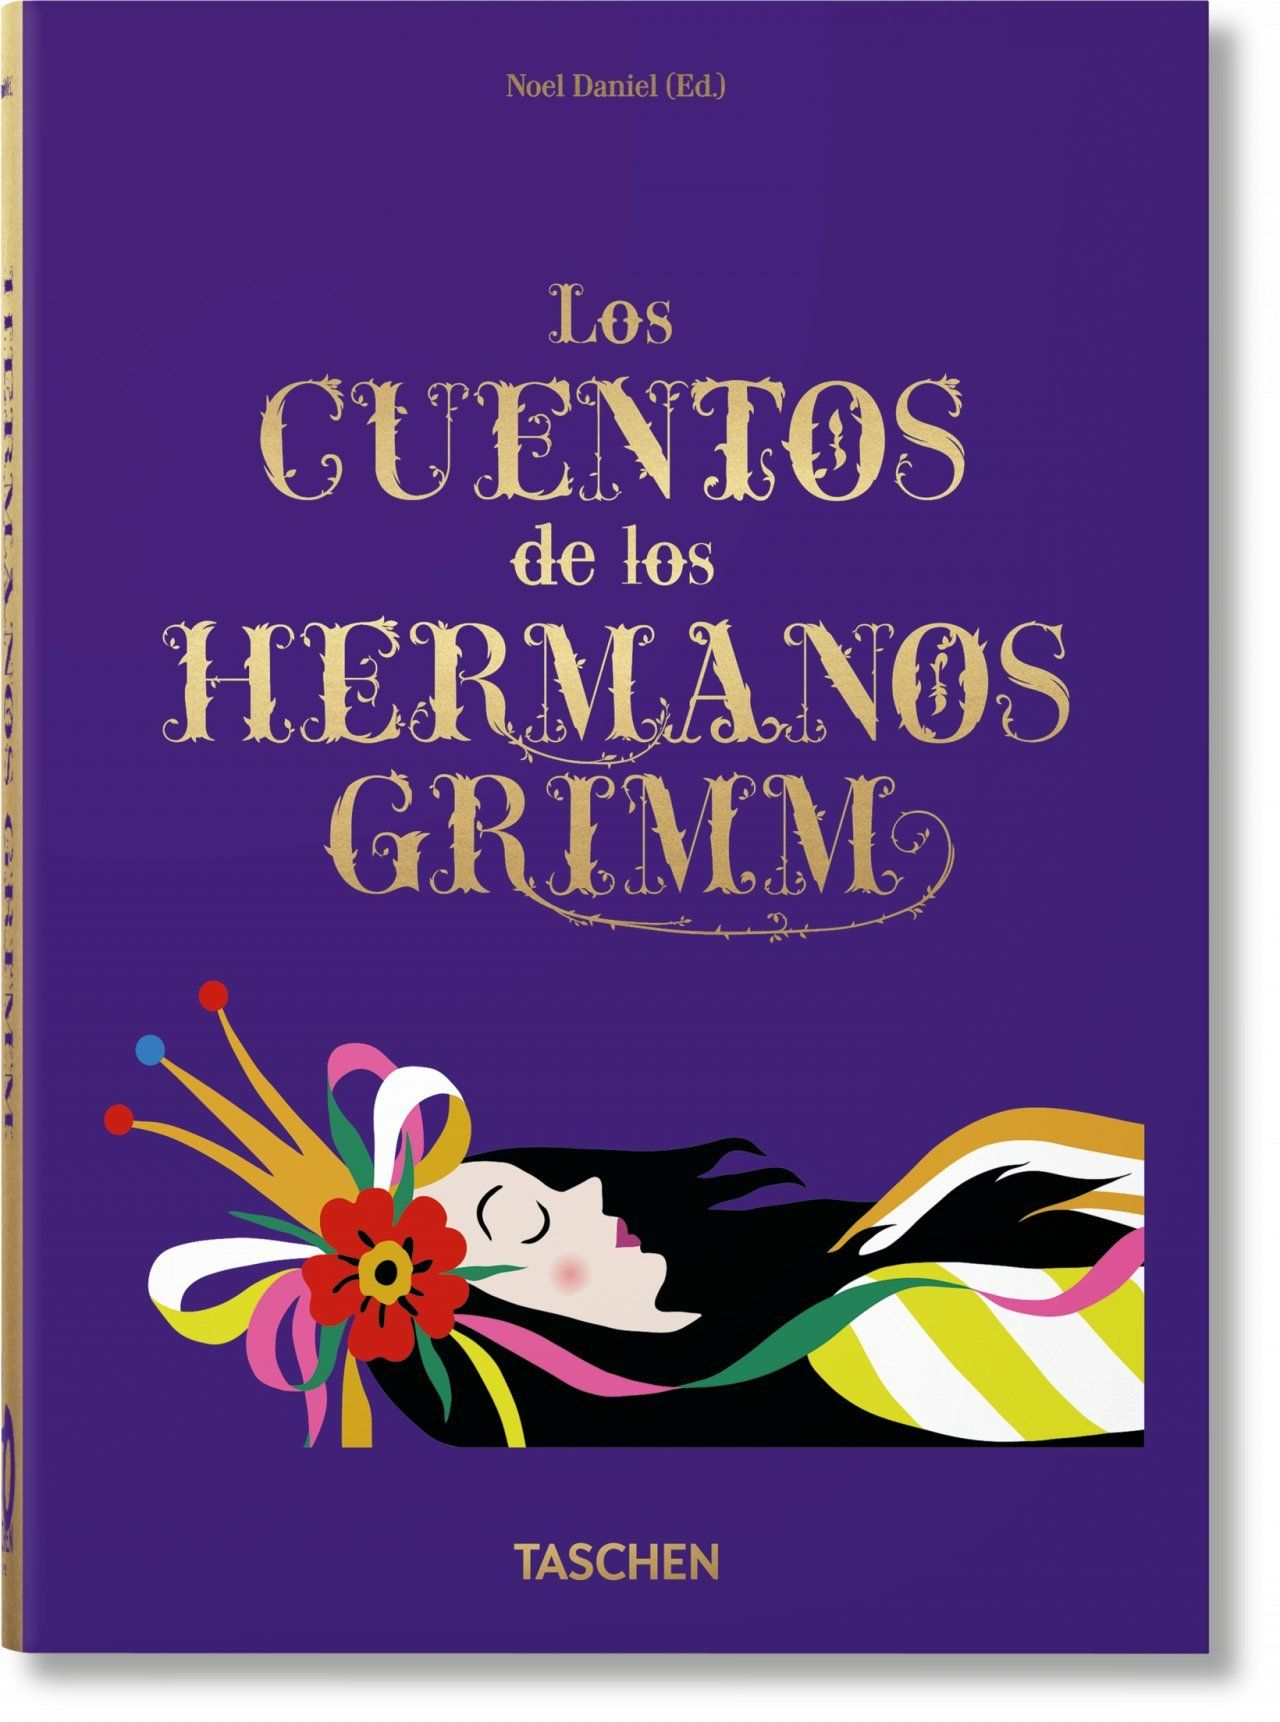 CUENTOS GRIMM & ANDERSEN: 2 IN 1 – 40TH ANNIVERSARY EDITION